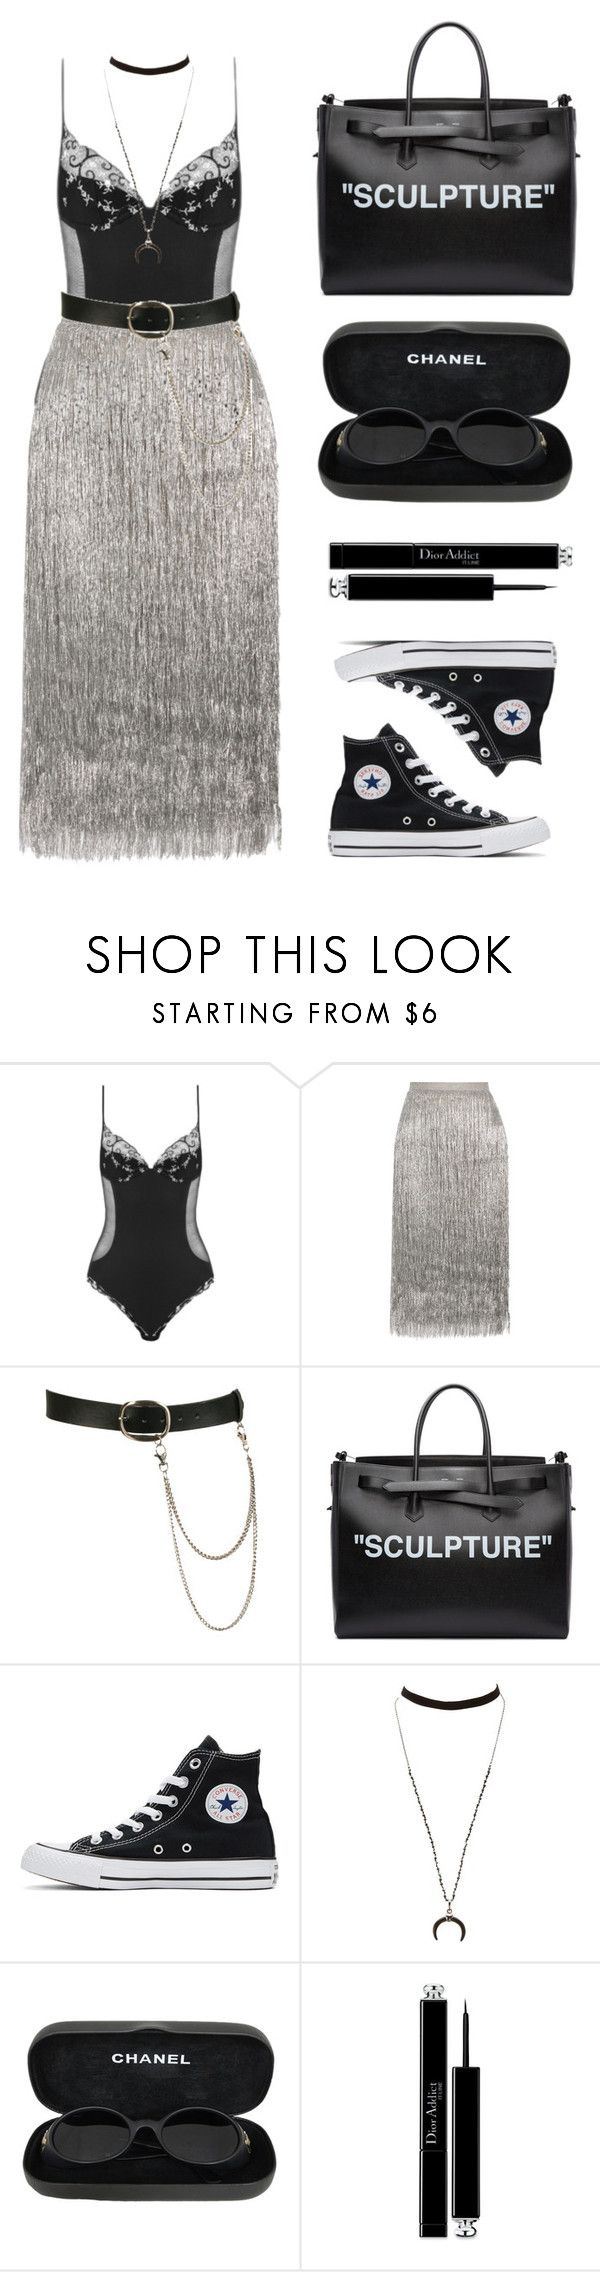 """Star"" by baludna ❤ liked on Polyvore featuring La Perla, Rachel Zoe, Wet Seal, Off-White, Converse, Charlotte Russe, Chanel and Christian Dior"